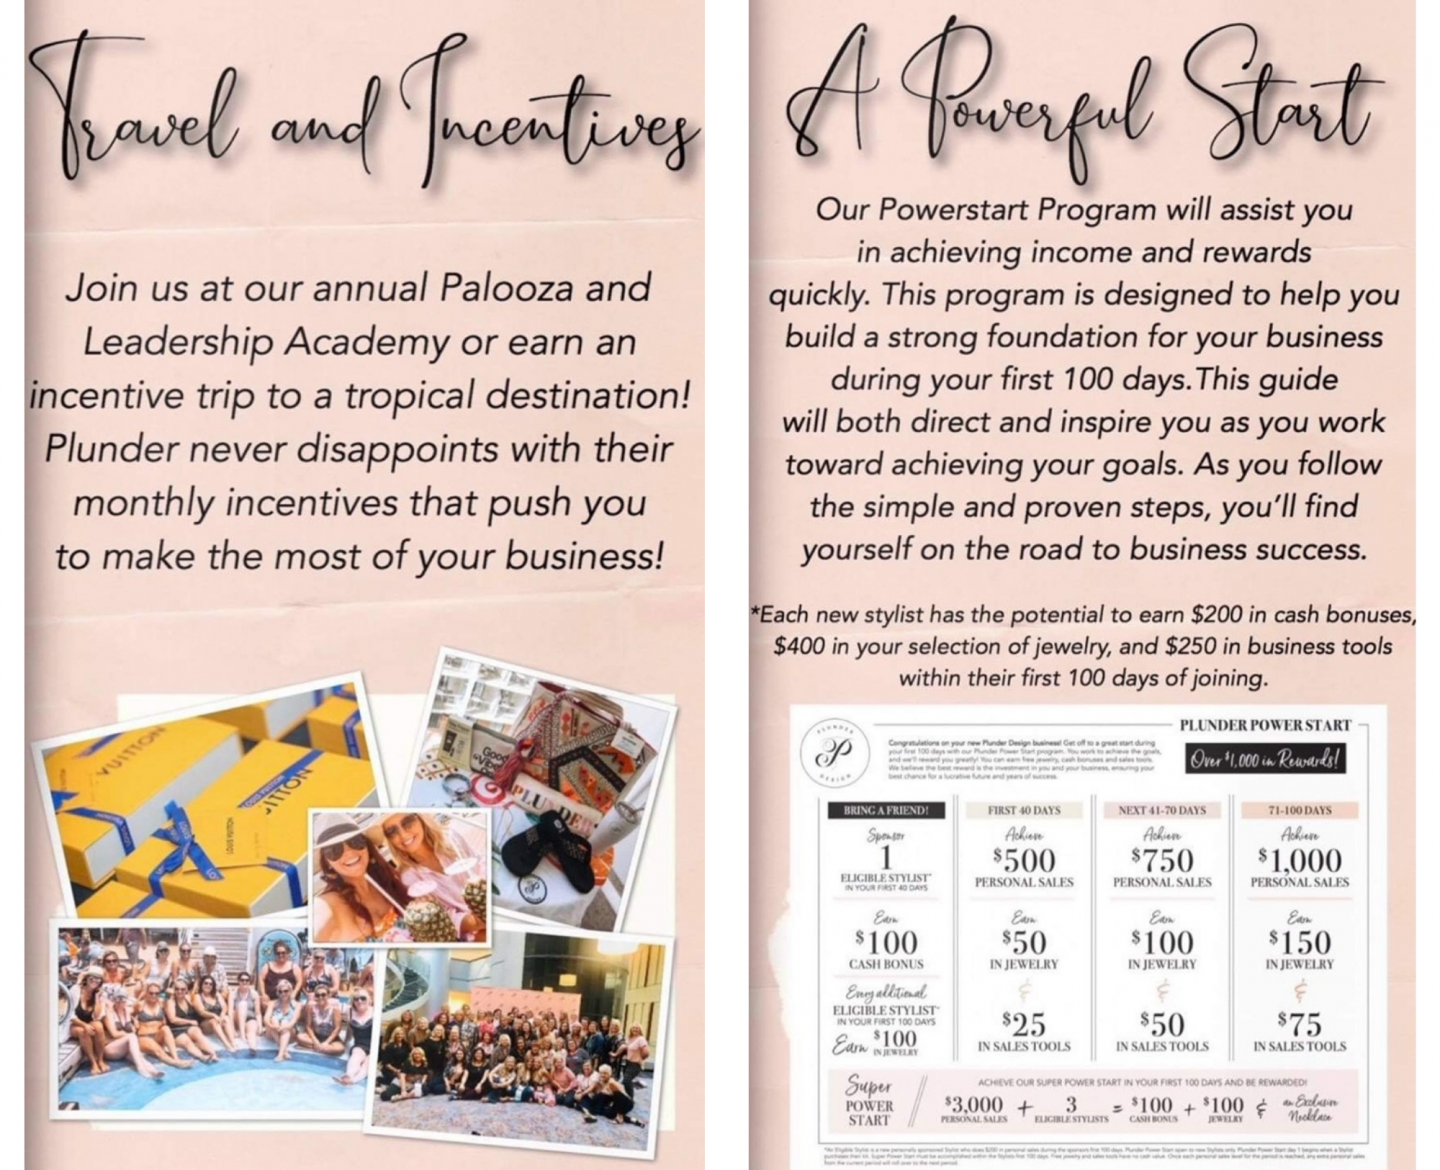 travel and incentives plunder jewelry